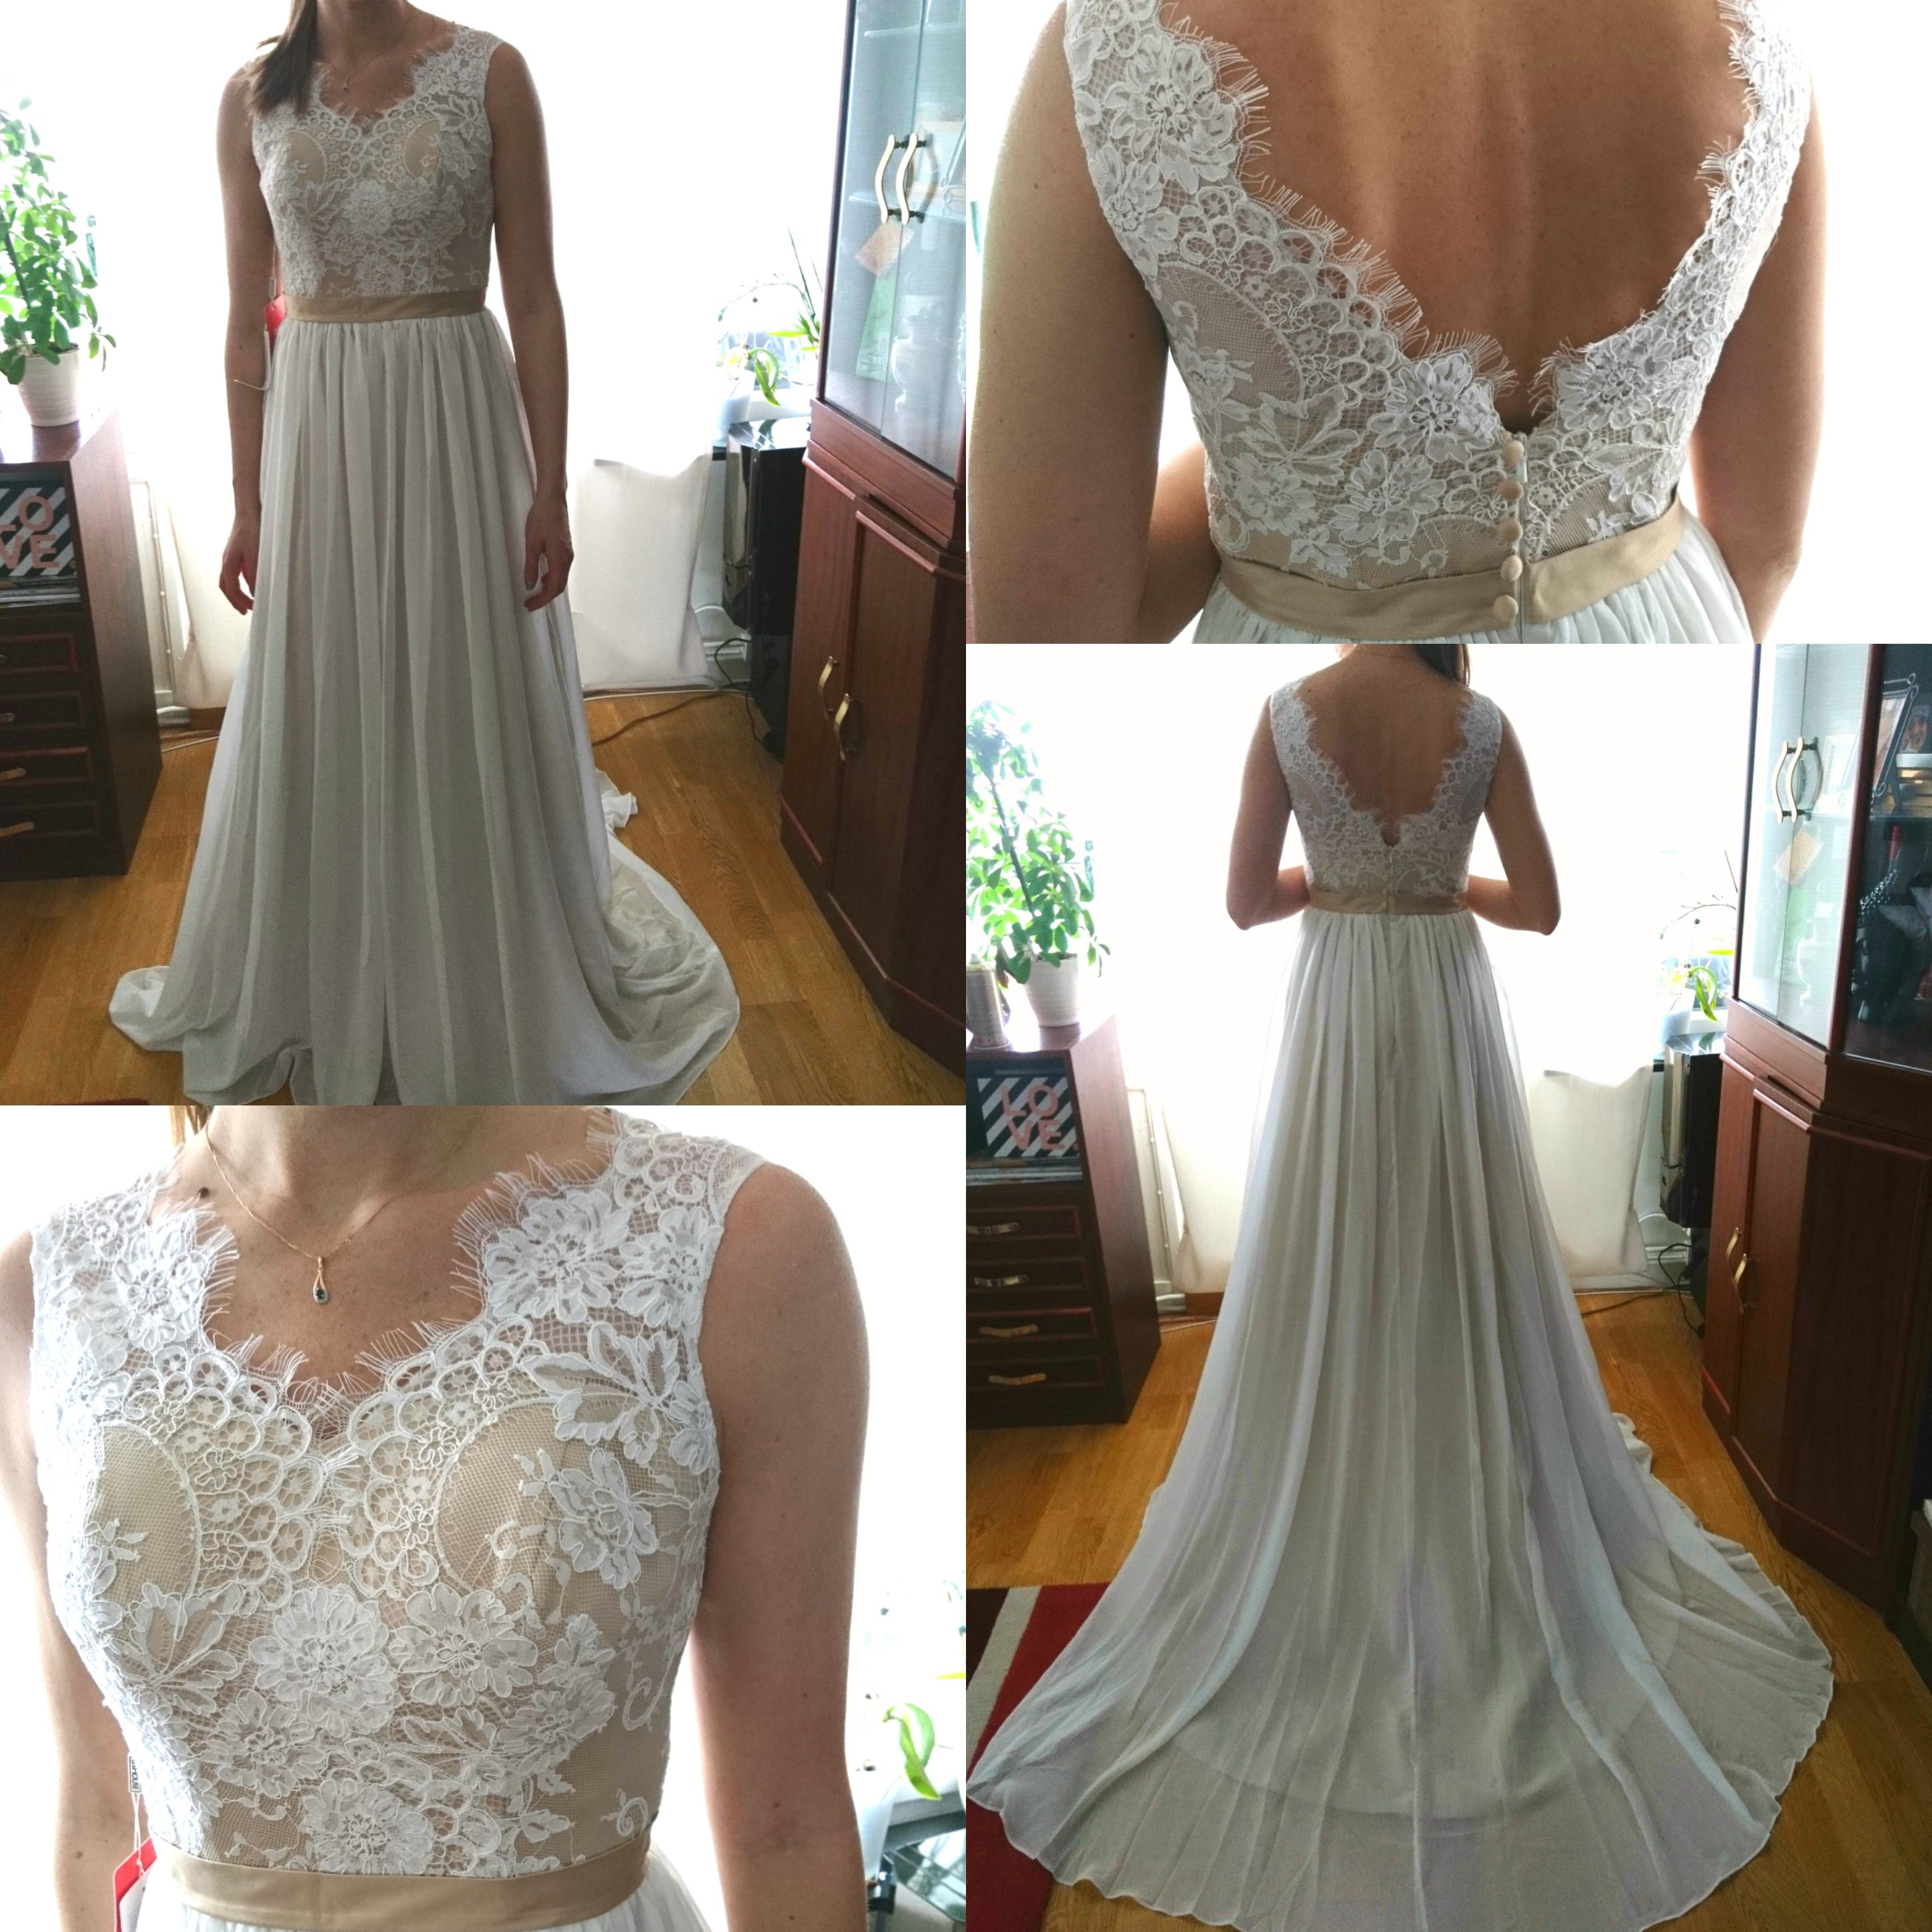 reviews on jjshouse wedding dresses | Wedding